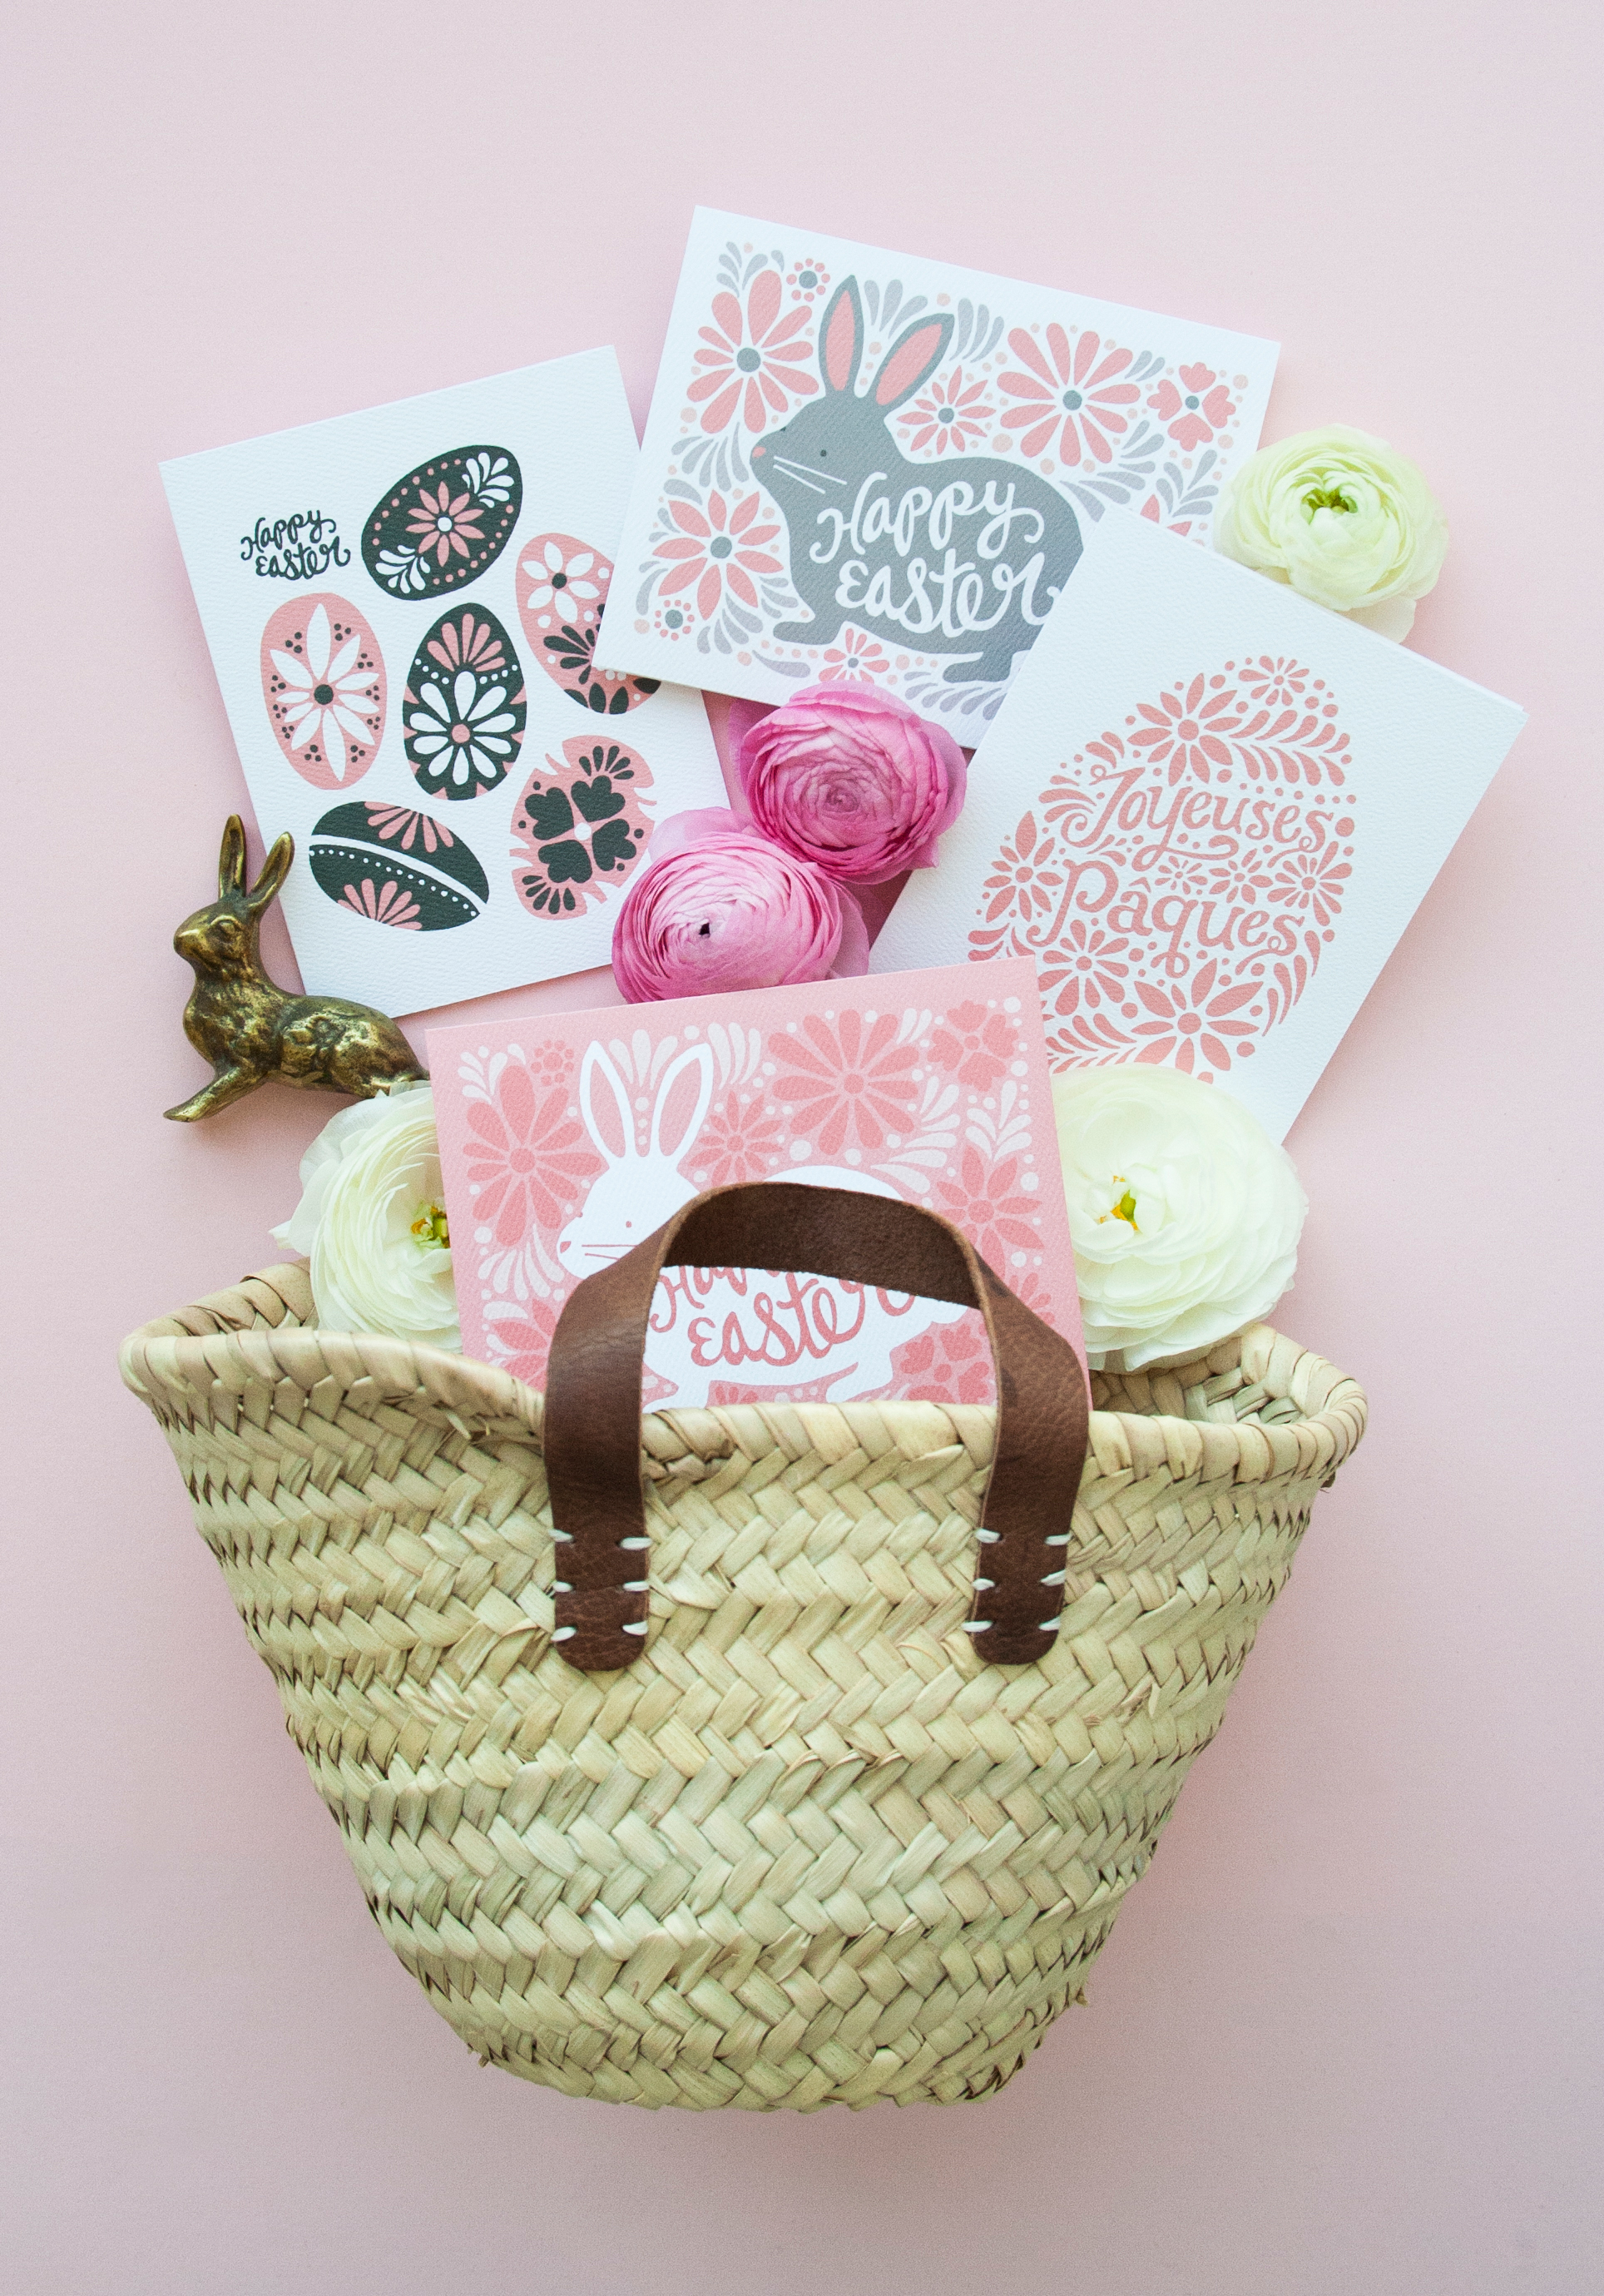 Orange_Paper_Shoppe_Easter_Basket_Greeting_Cards.jpg